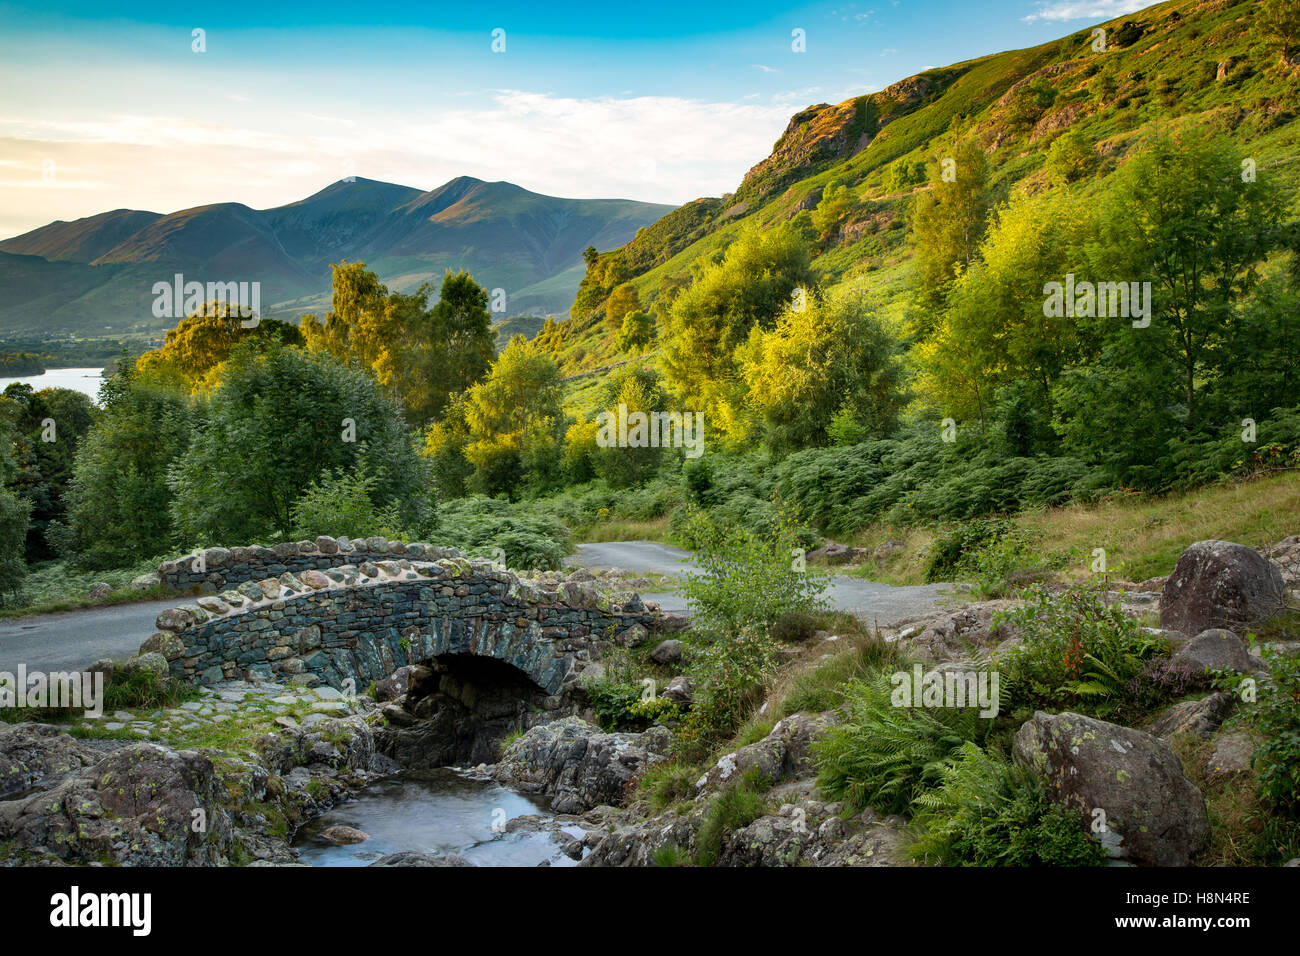 Ashness Bridge and the last rays of sunlight on the mountains above Derwentwater, the Lake District, Cumbria, England - Stock Image